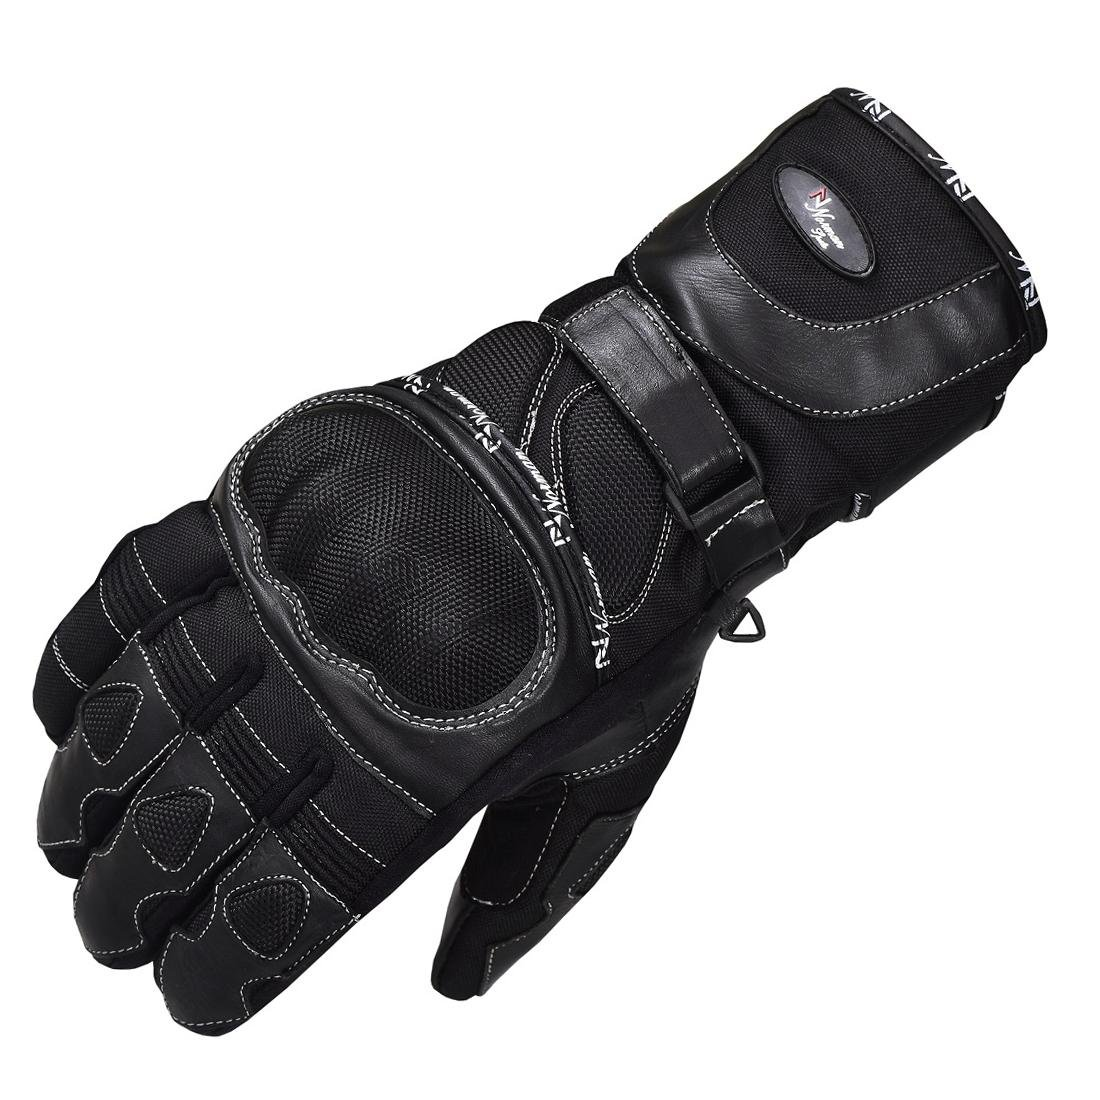 WATERPROOF MOTORCYCLE MOTORBIKE TOURING BIKE GLOVES LEATHER/CORDURA (XL)